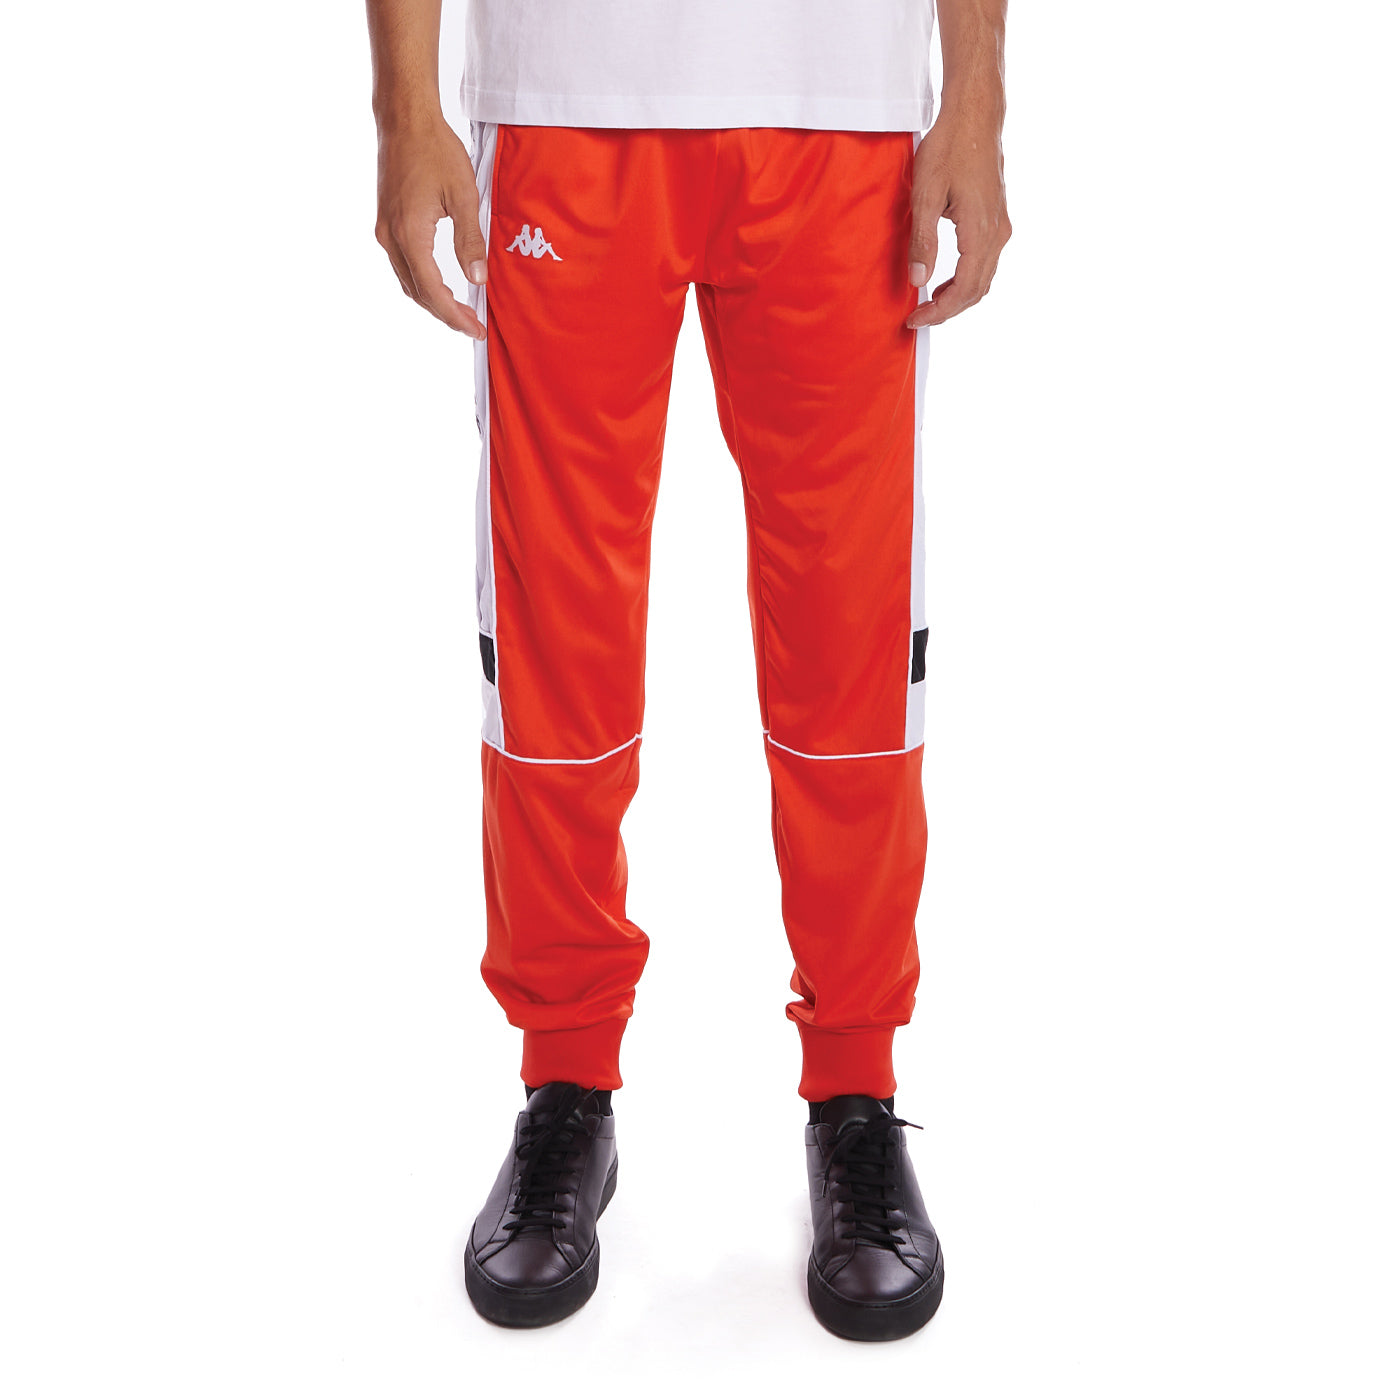 Kappa 222 Banda Memzz Trackpants - Orange Flame Black White